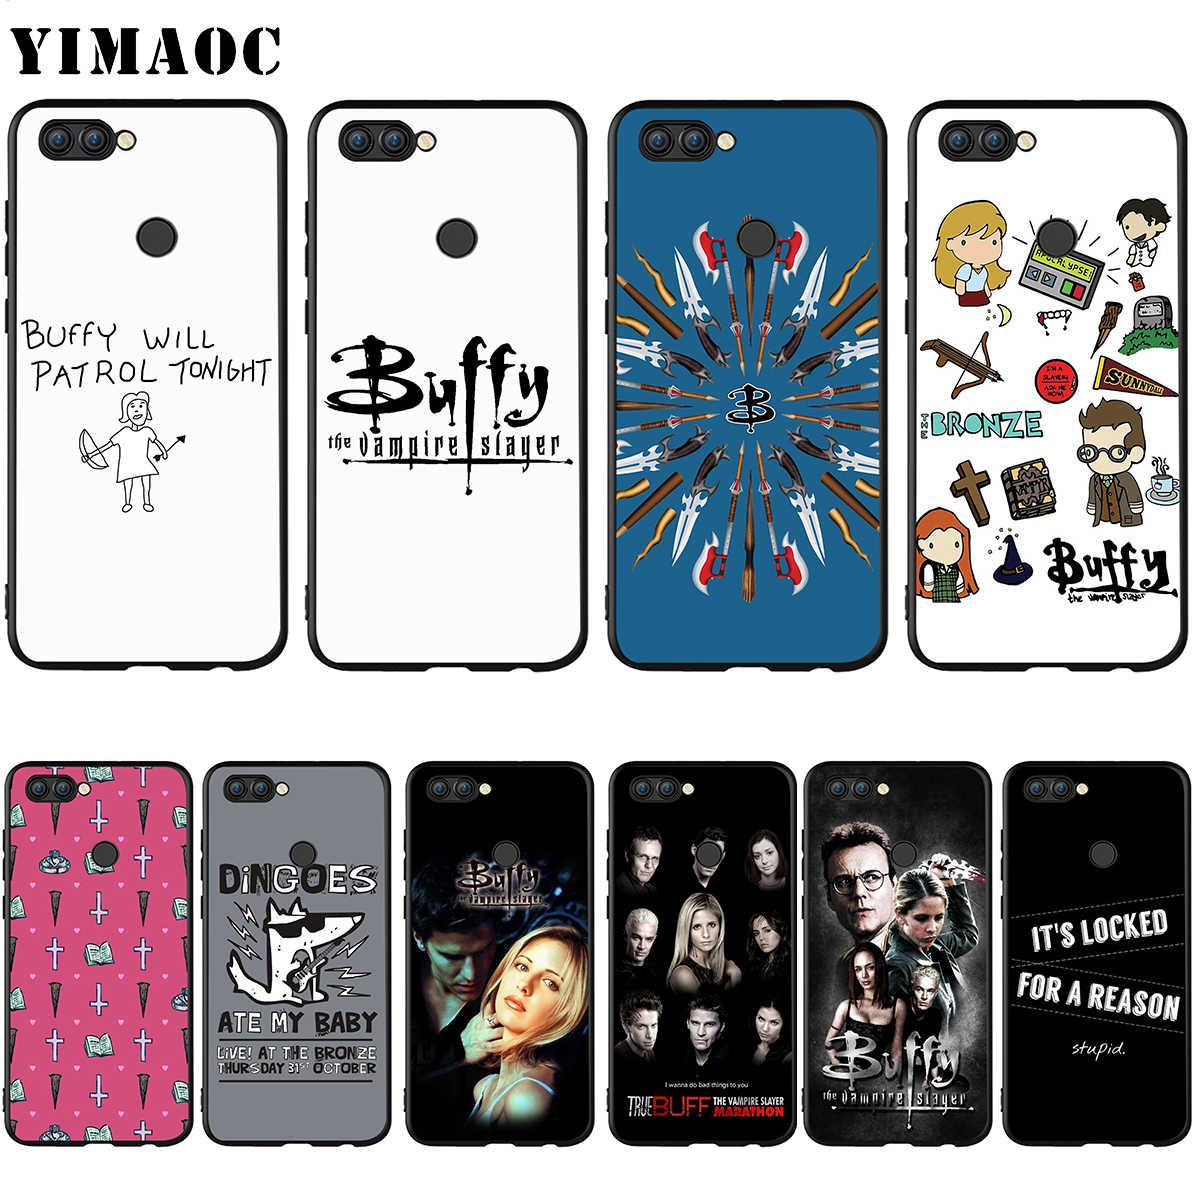 YIMAOC Buffy The Vampire Slayer per il Caso di Huawei Honor Compagno P smart Y7 Y9 8C 30 20 10 8x Nova 3i 3 Lite Pro Prime 2018 2019